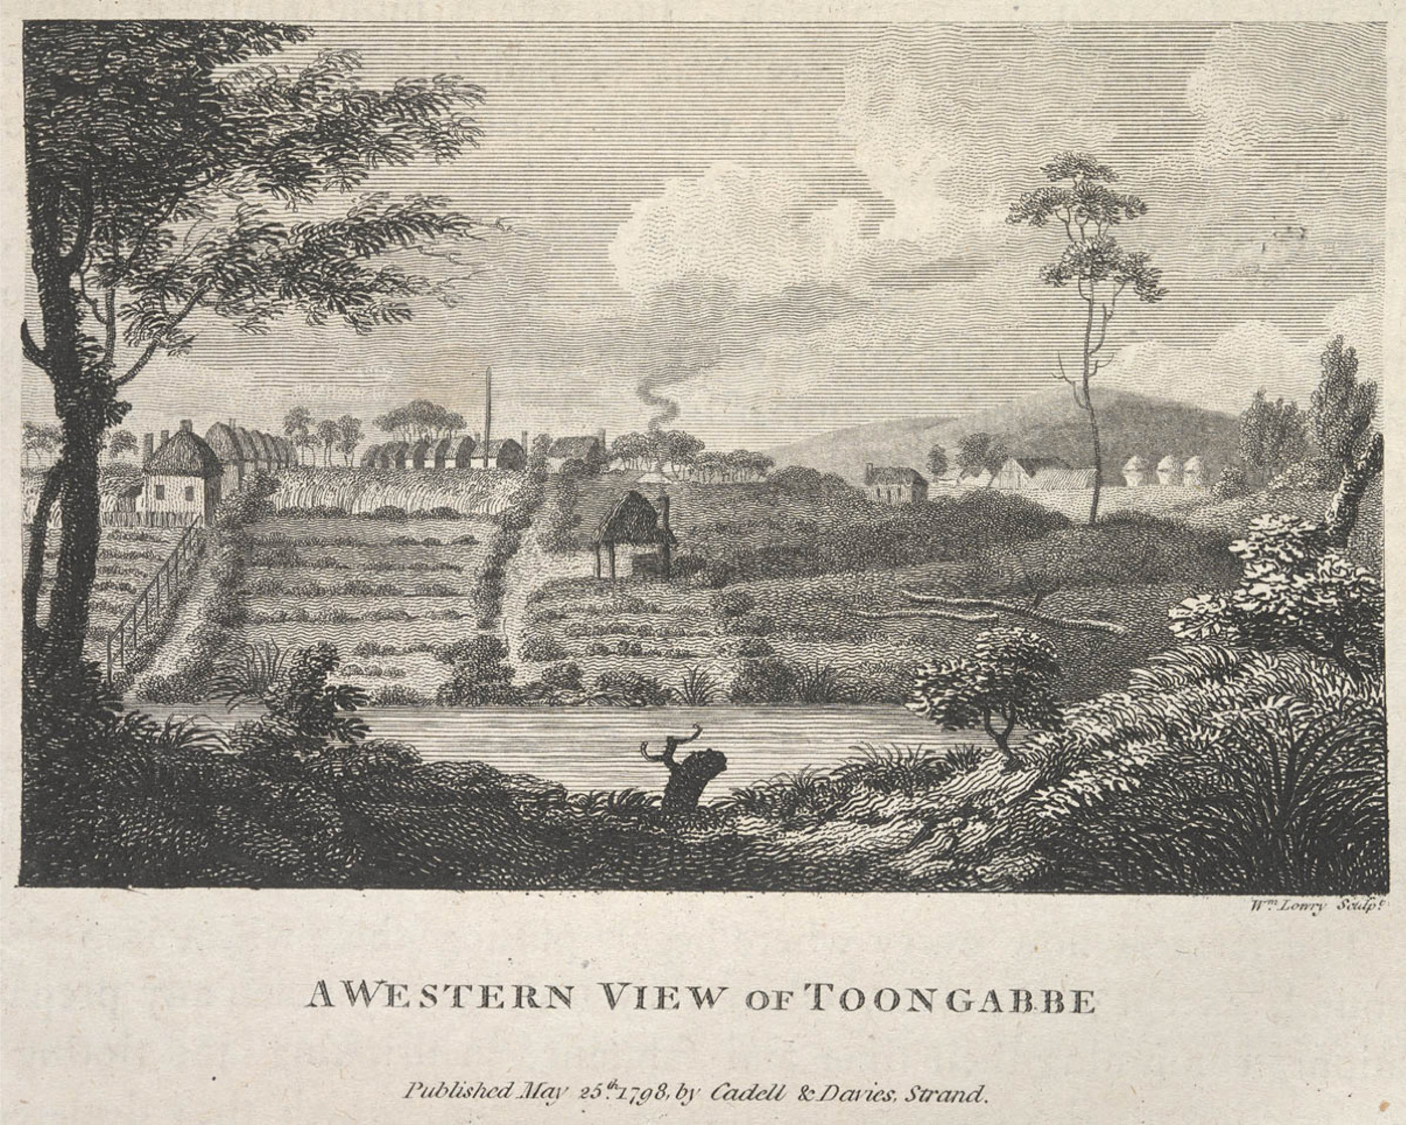 Wilson Lowry, Western View of Toongabbe, Toongabbie, St. John's Cemetery Project, Old Parramattans, St. John's First Fleeters, Convicts, Thomas Daveney